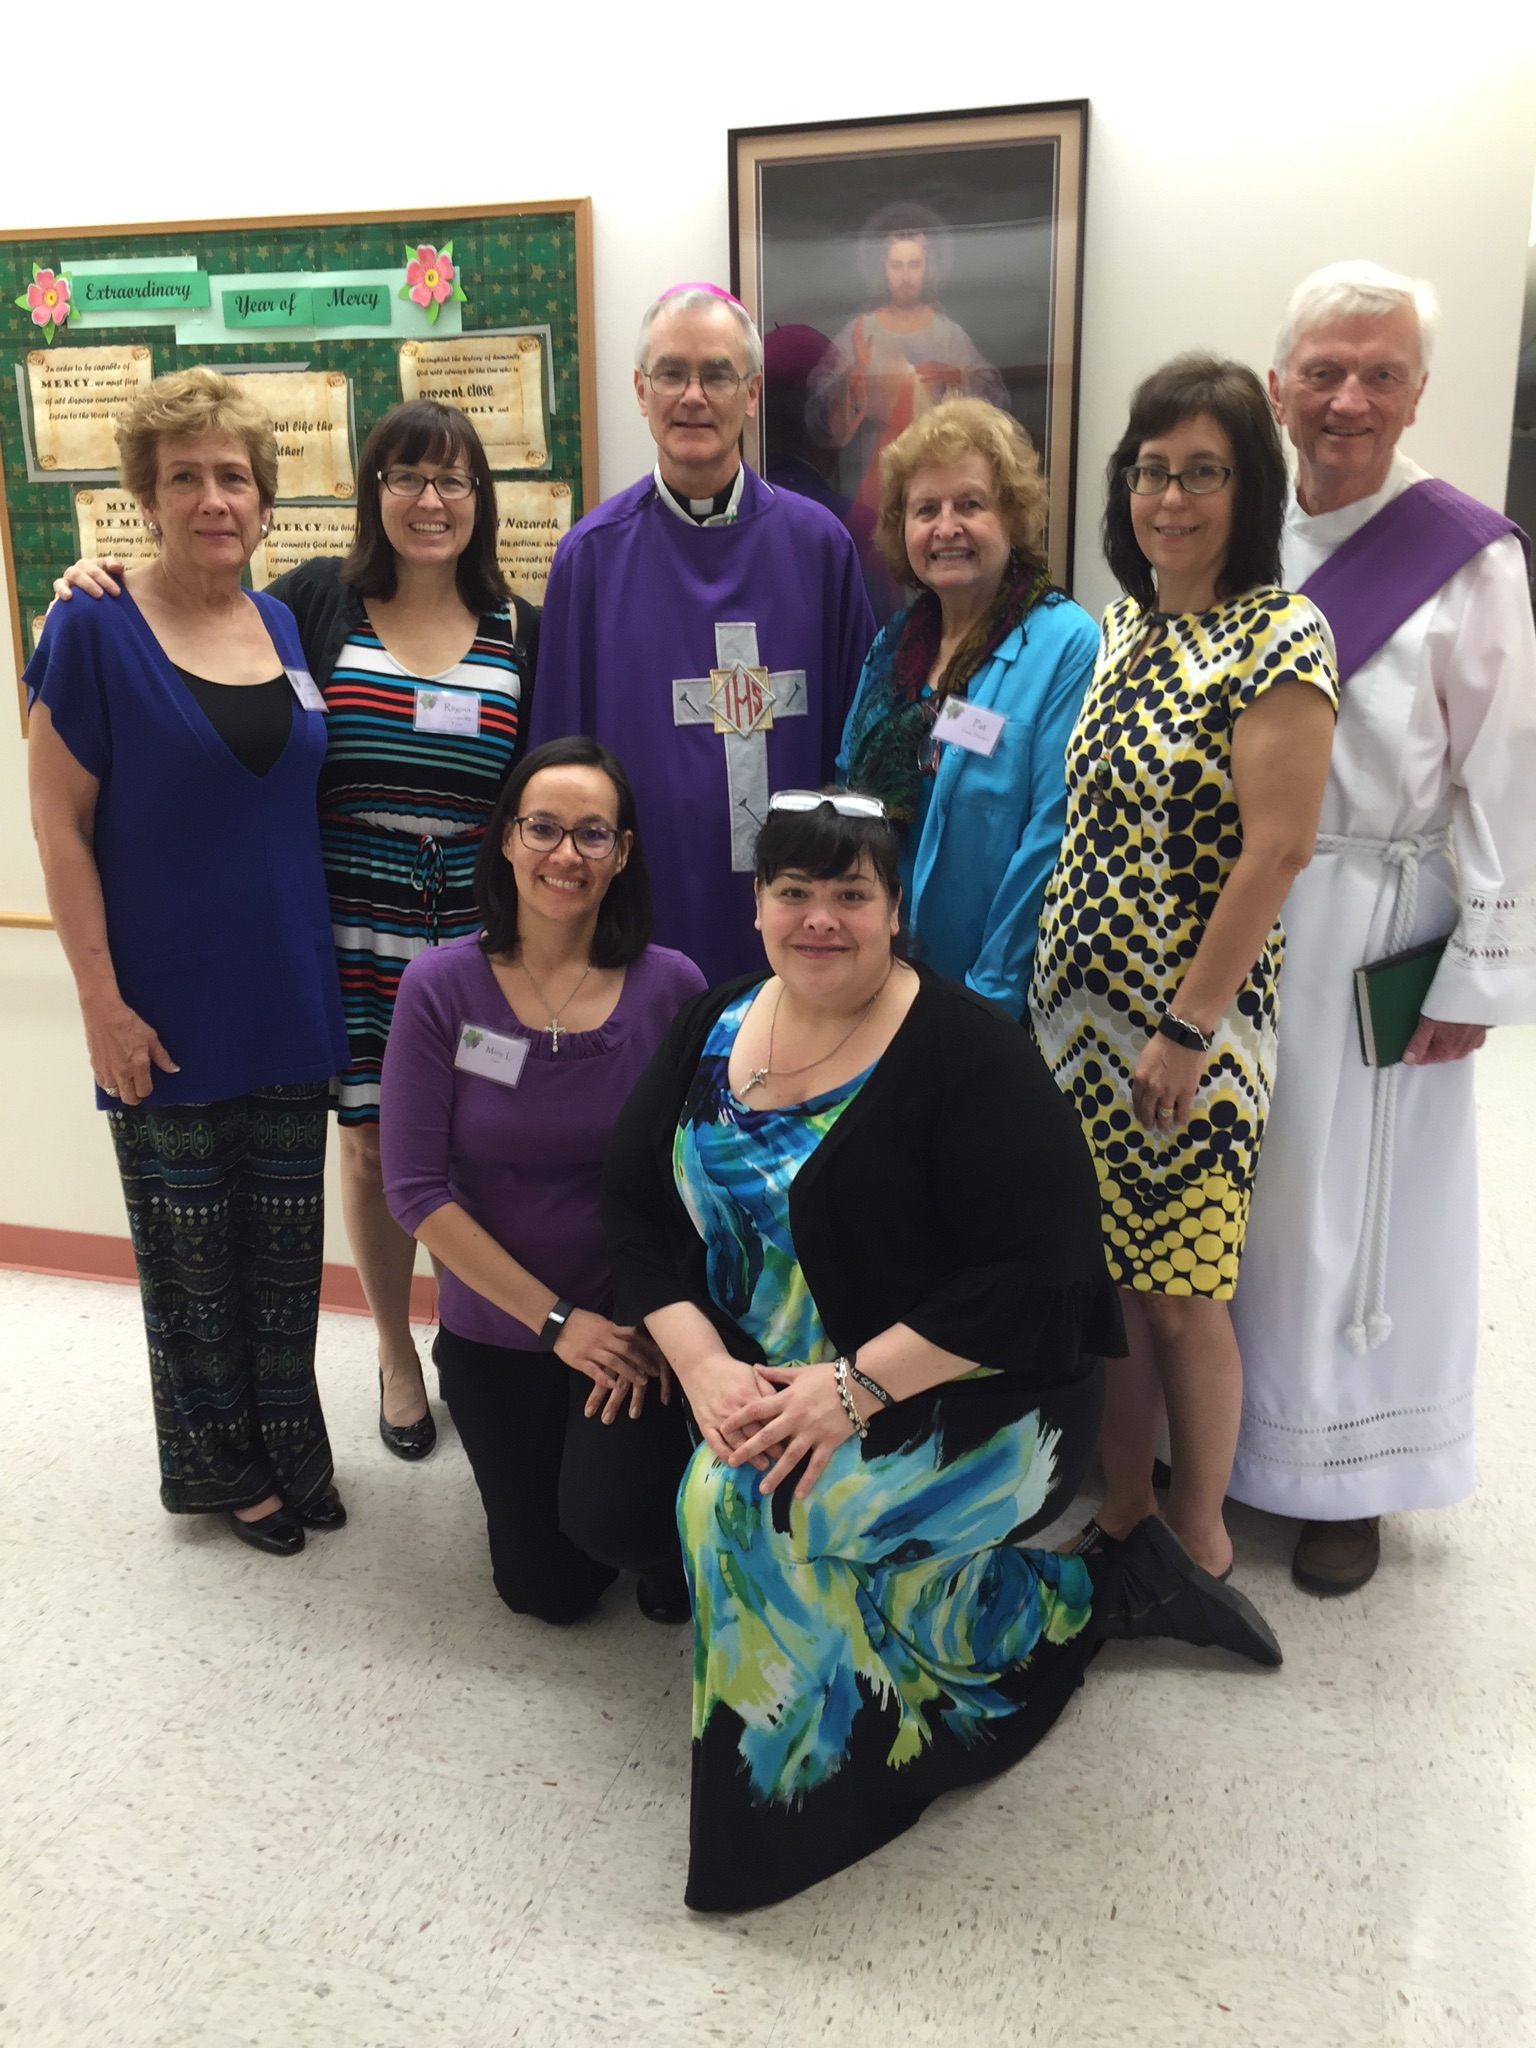 Rachel's Vineyard Retreat Team with Bishop Kelly